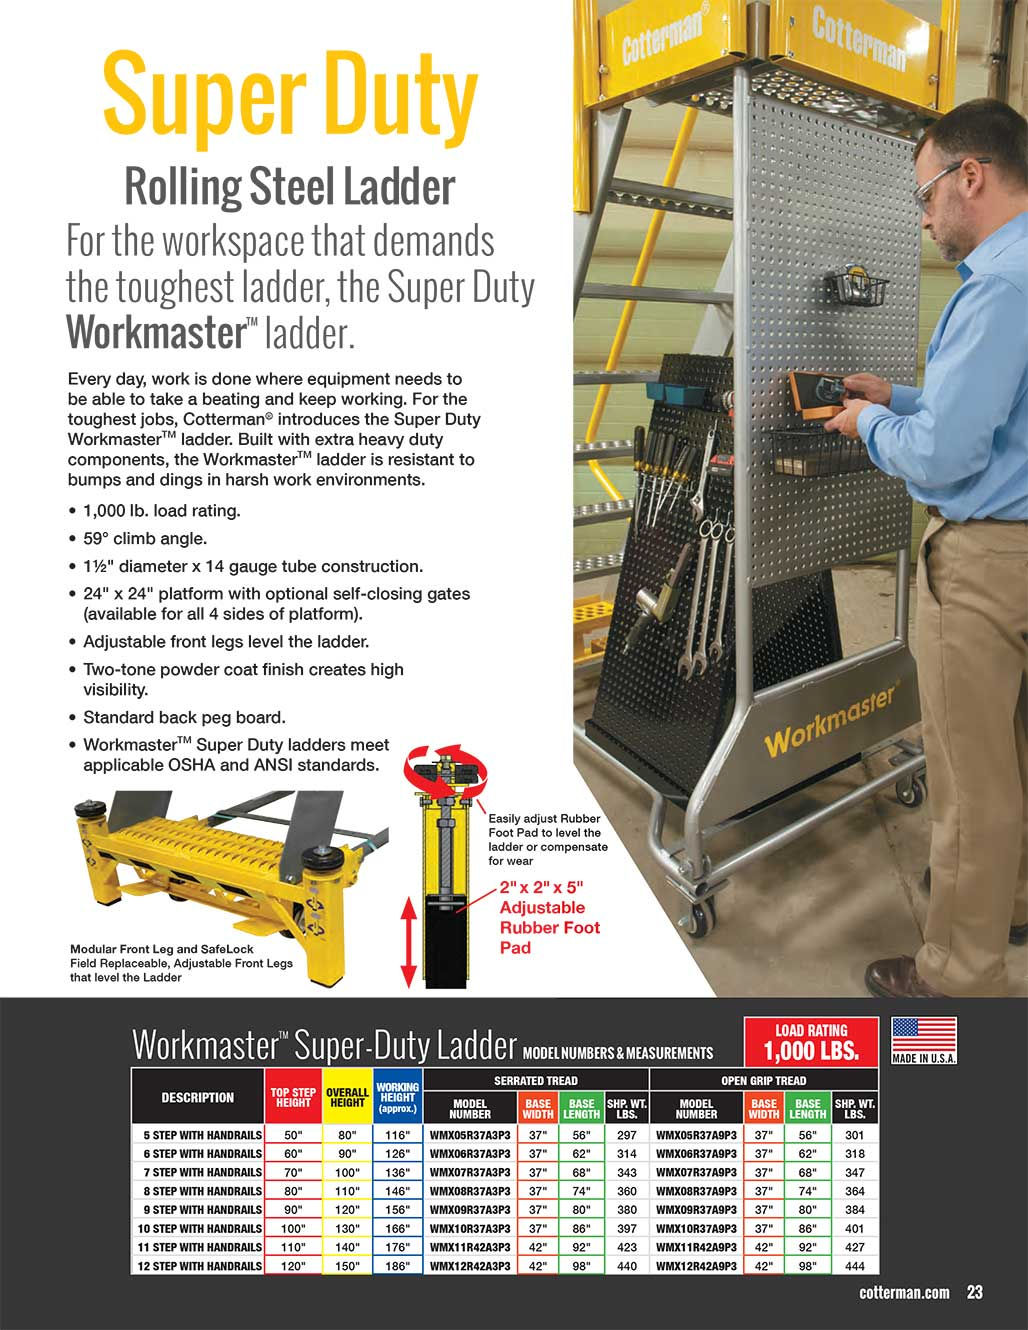 Cotterman Workmaster Super-Duty Rolling Steel Ladder Technical Specs